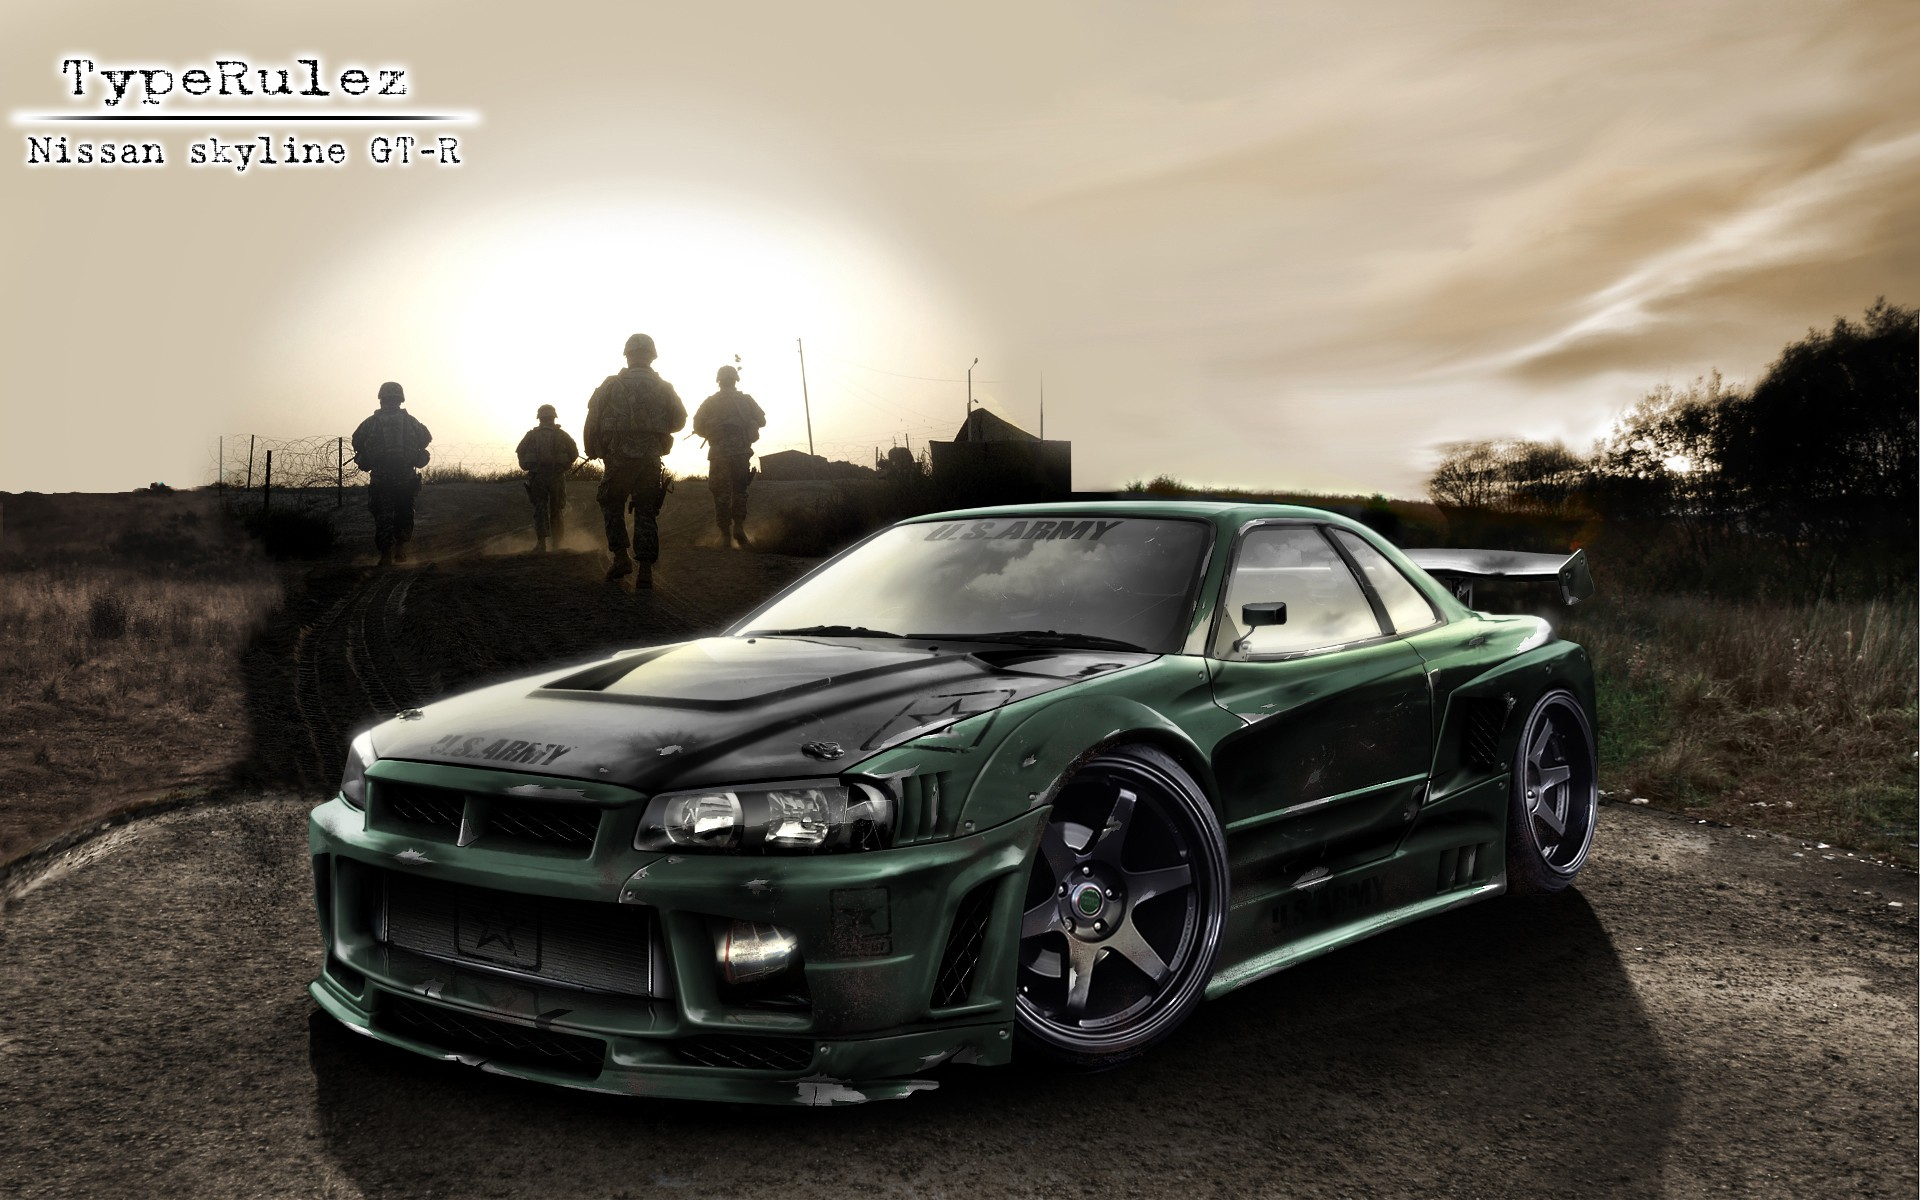 R34 Wallpaper Hd Race Cars Nissan Skyline Gt R R34 Shark Sea Weapon